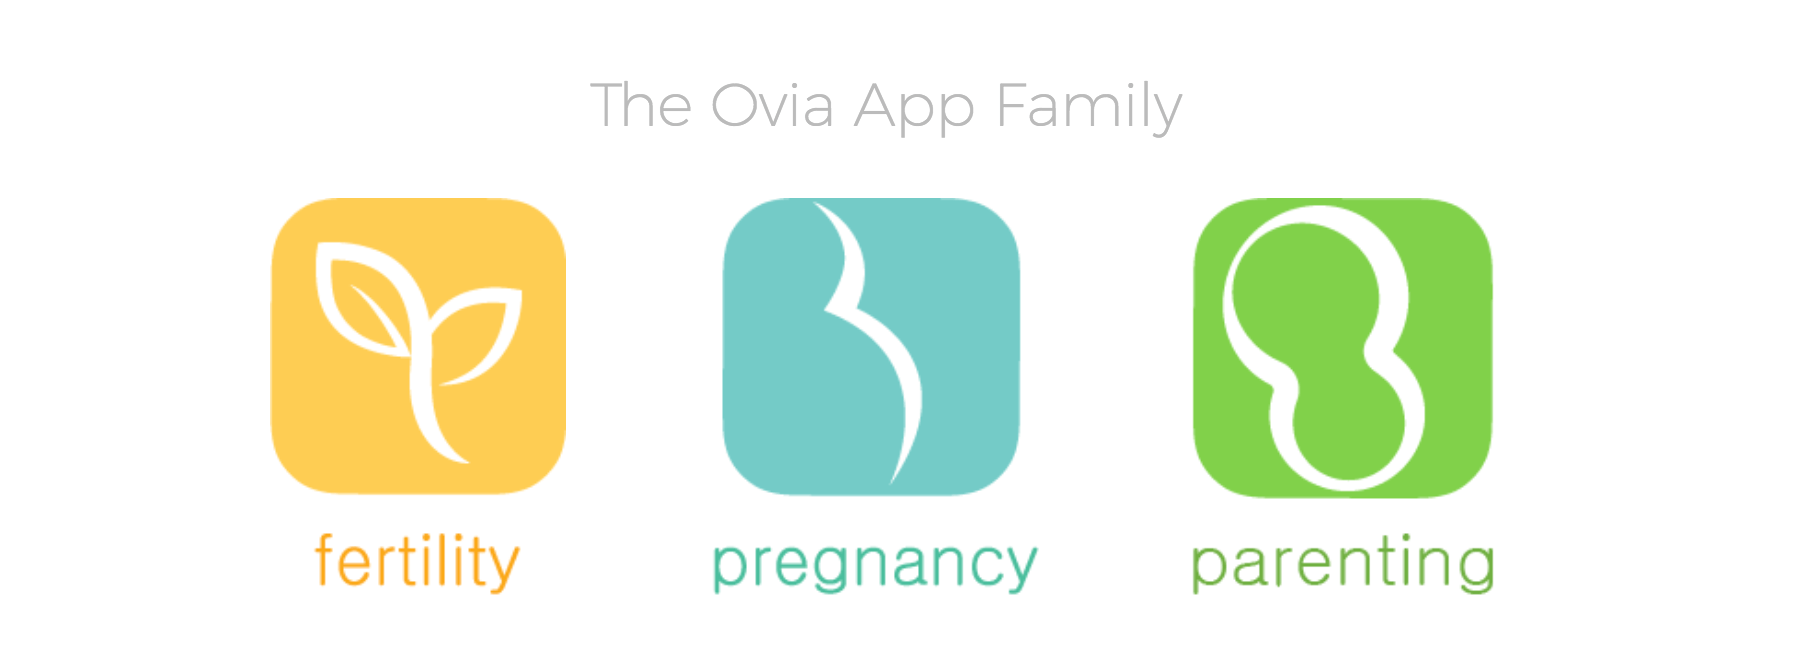 Trying to Get Pregnant? This App Calculates the Fertility Period